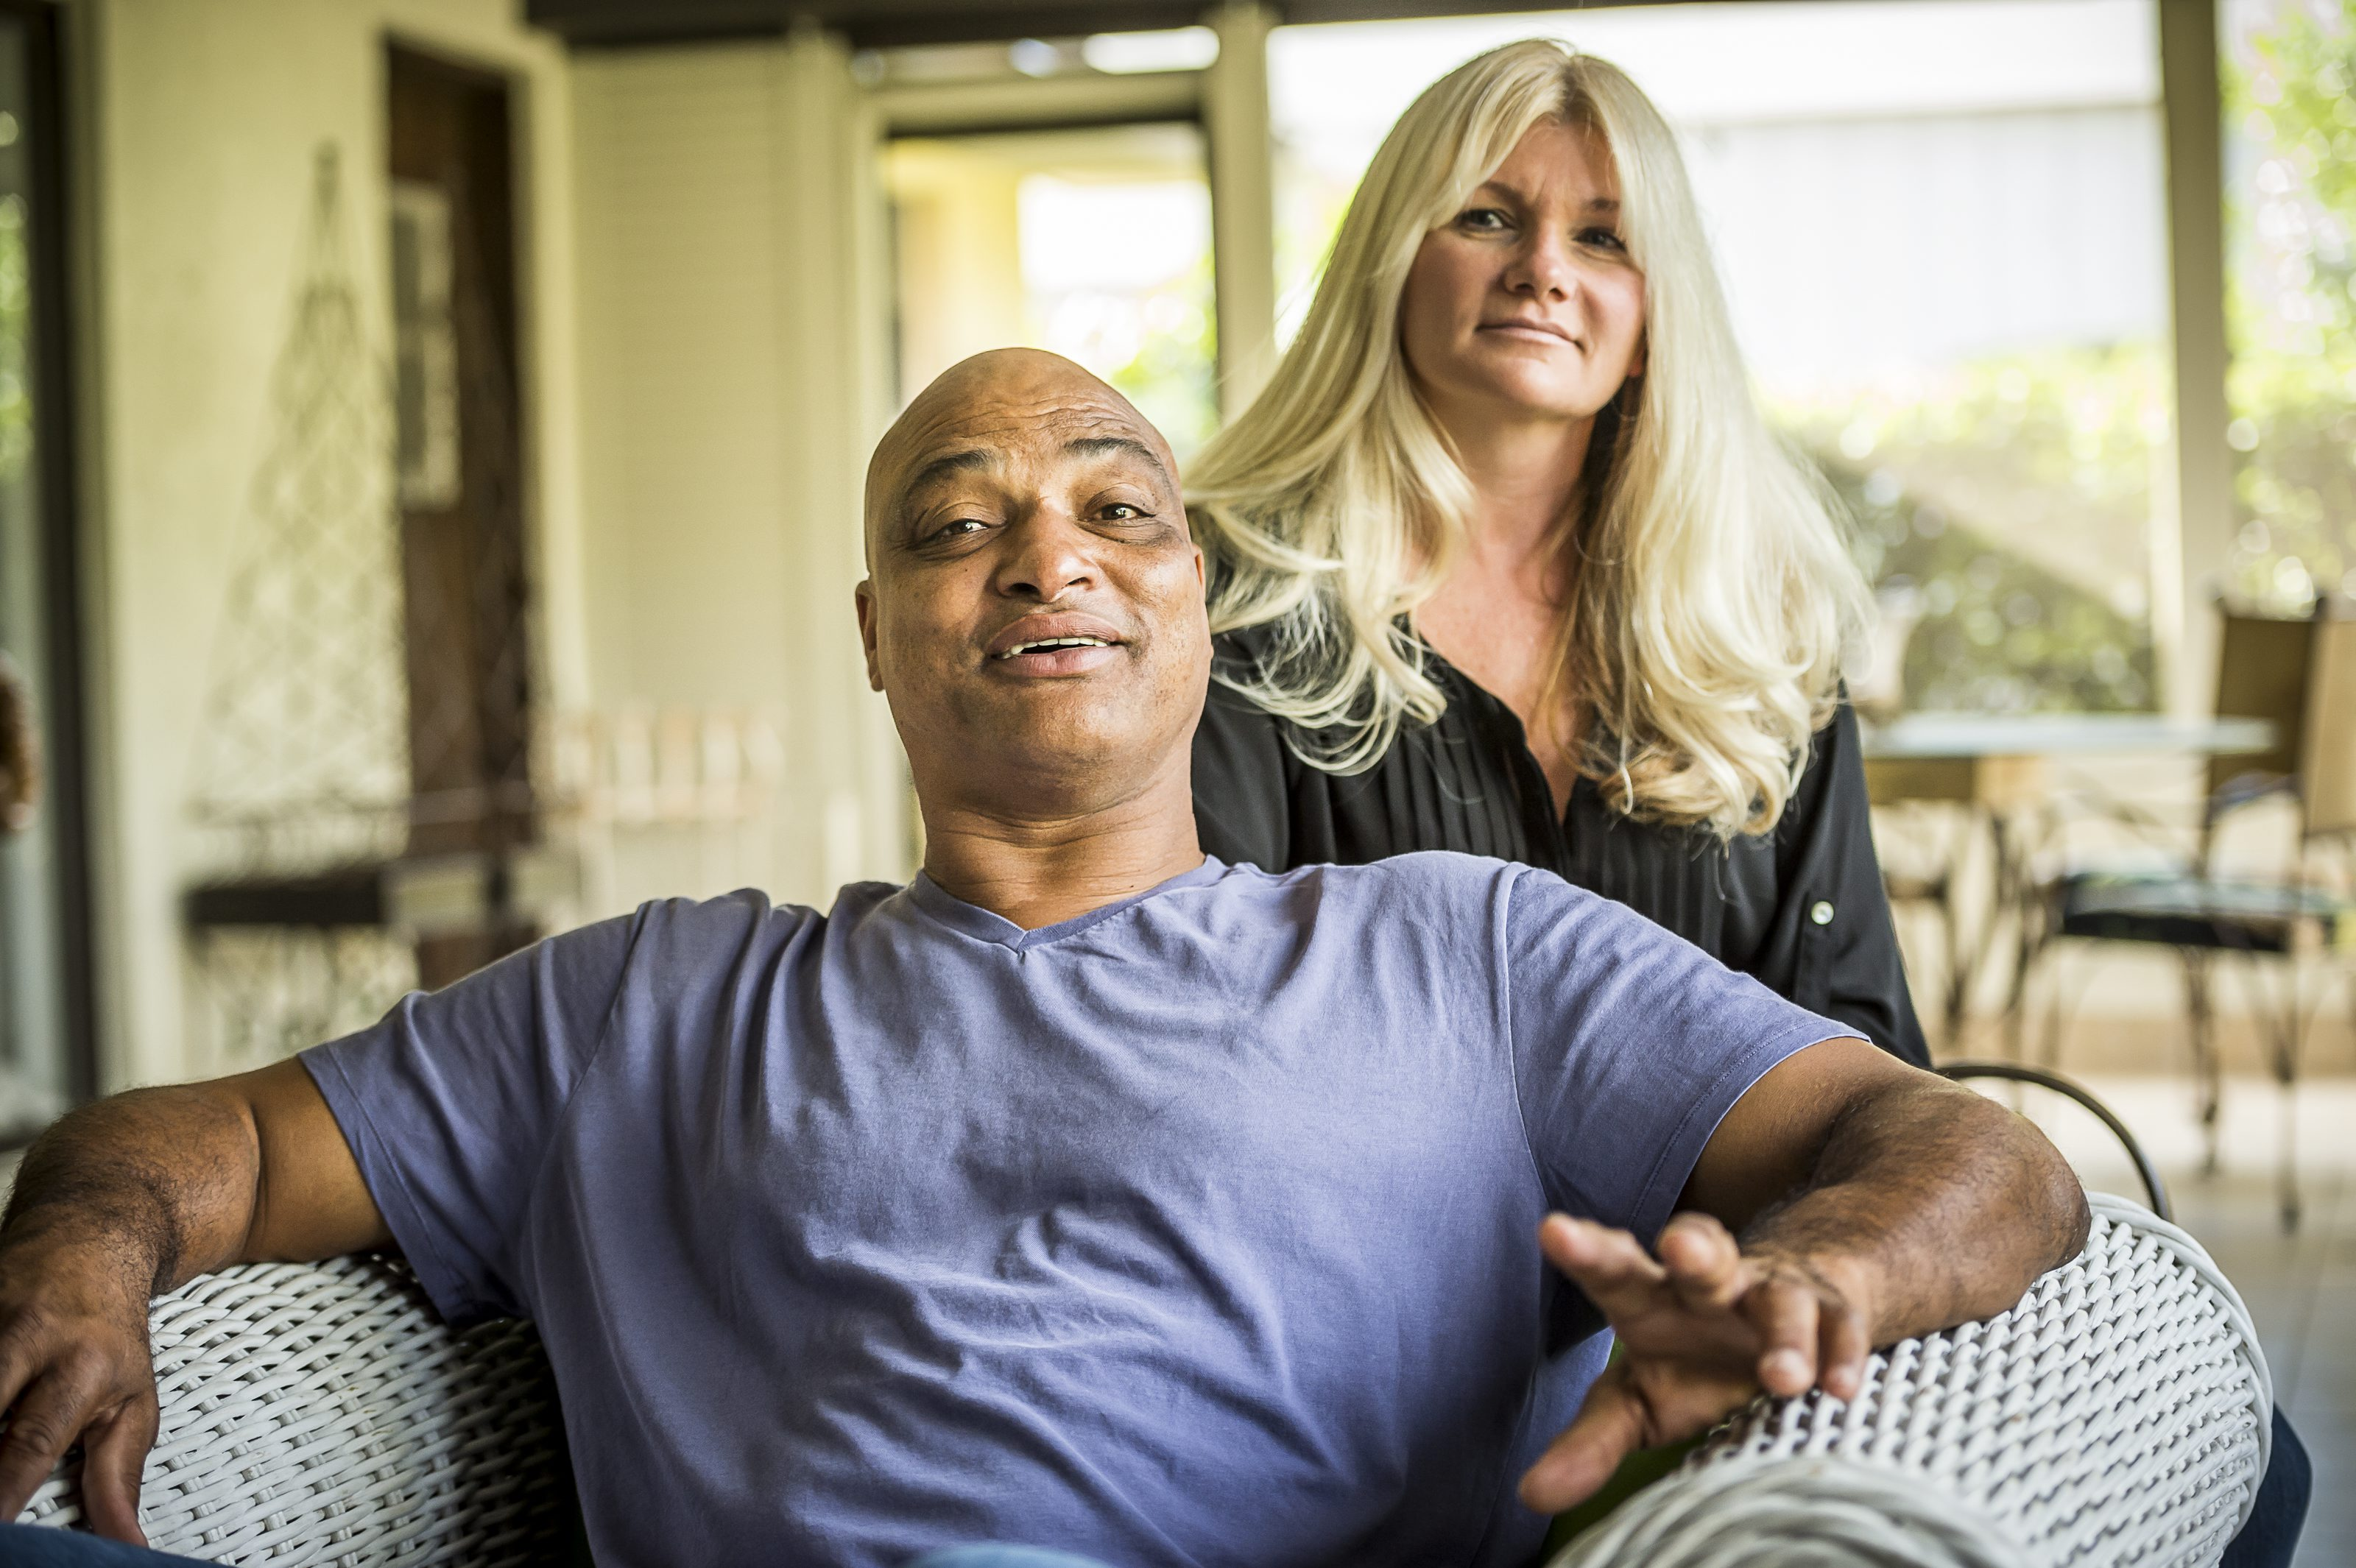 Darryl and wife Janine Talley at their home in Orlando in Nov. 2014. (Photo by Roberto Gonzalez)